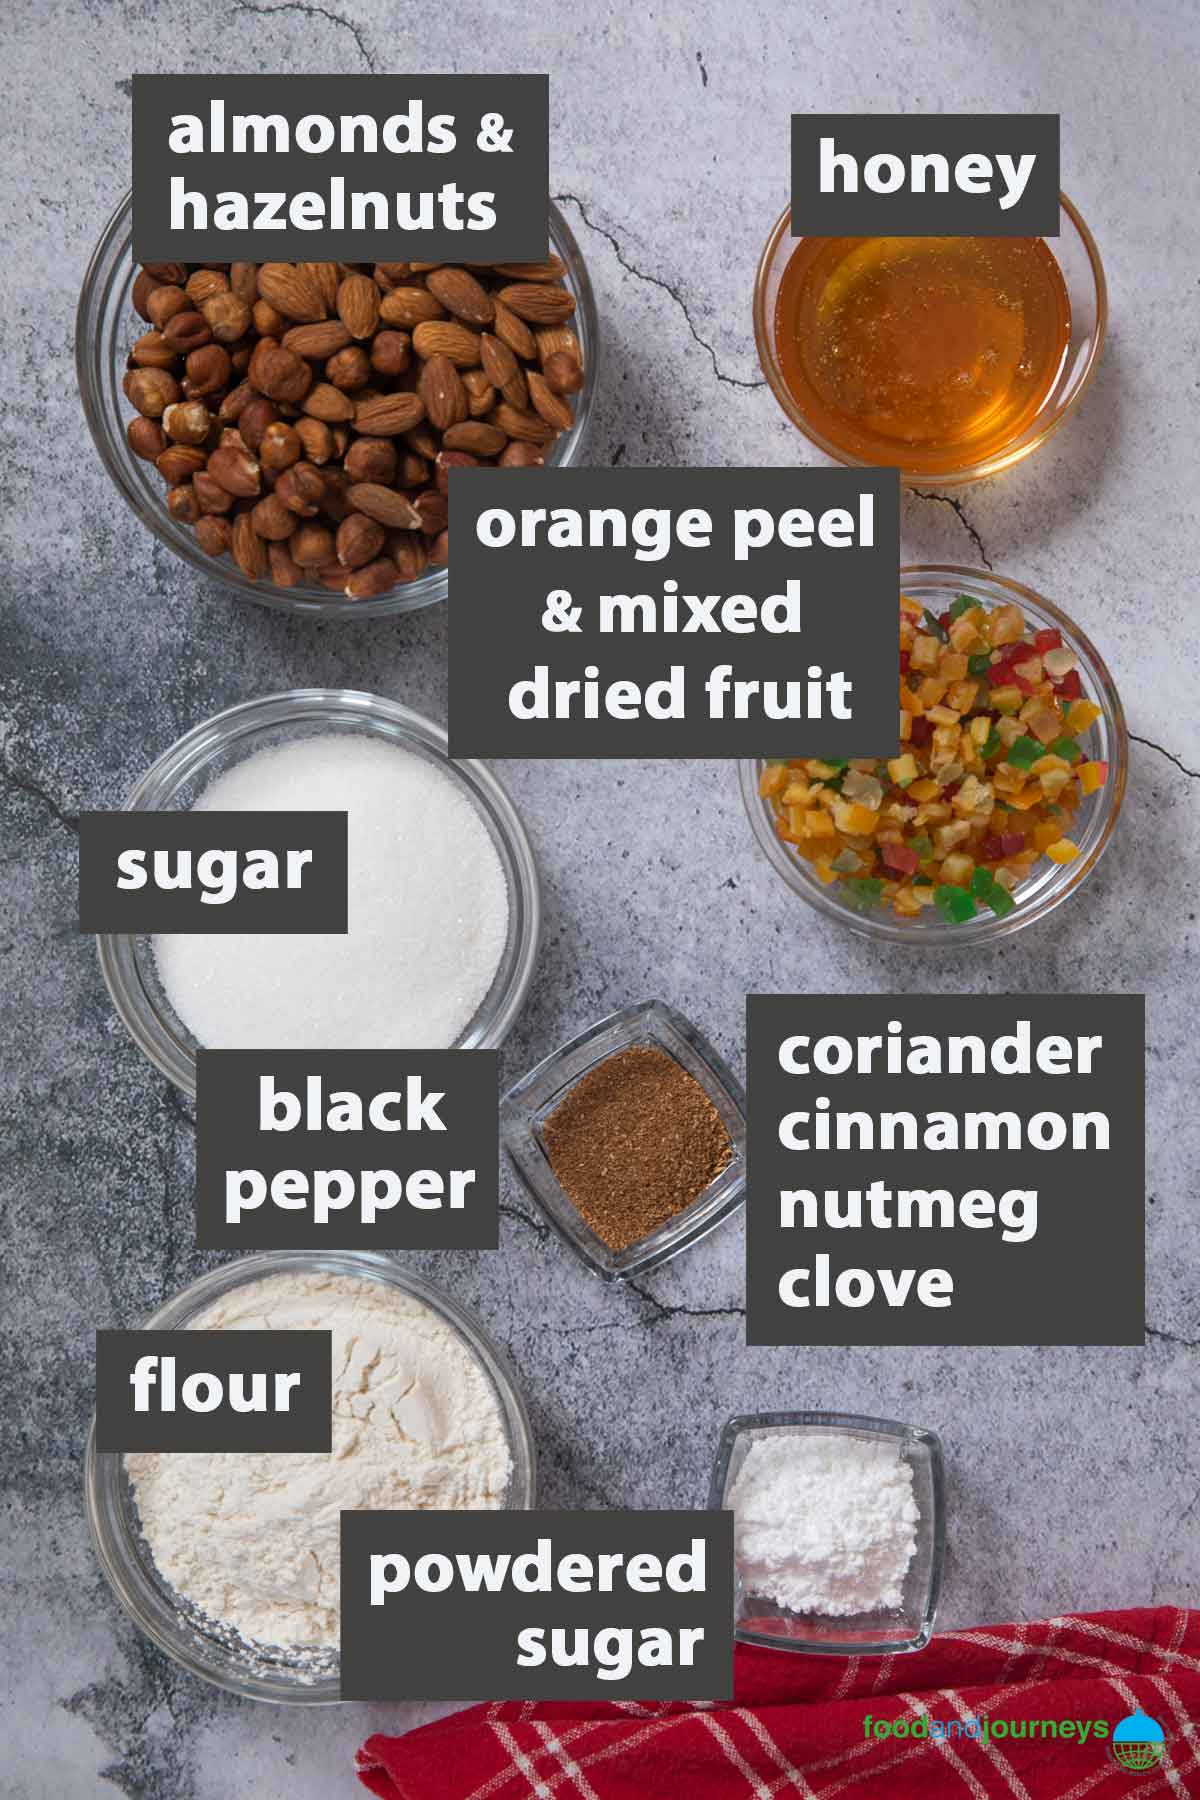 Jun2021 Latest image showing the ingredients you need to prepare panforte at home.